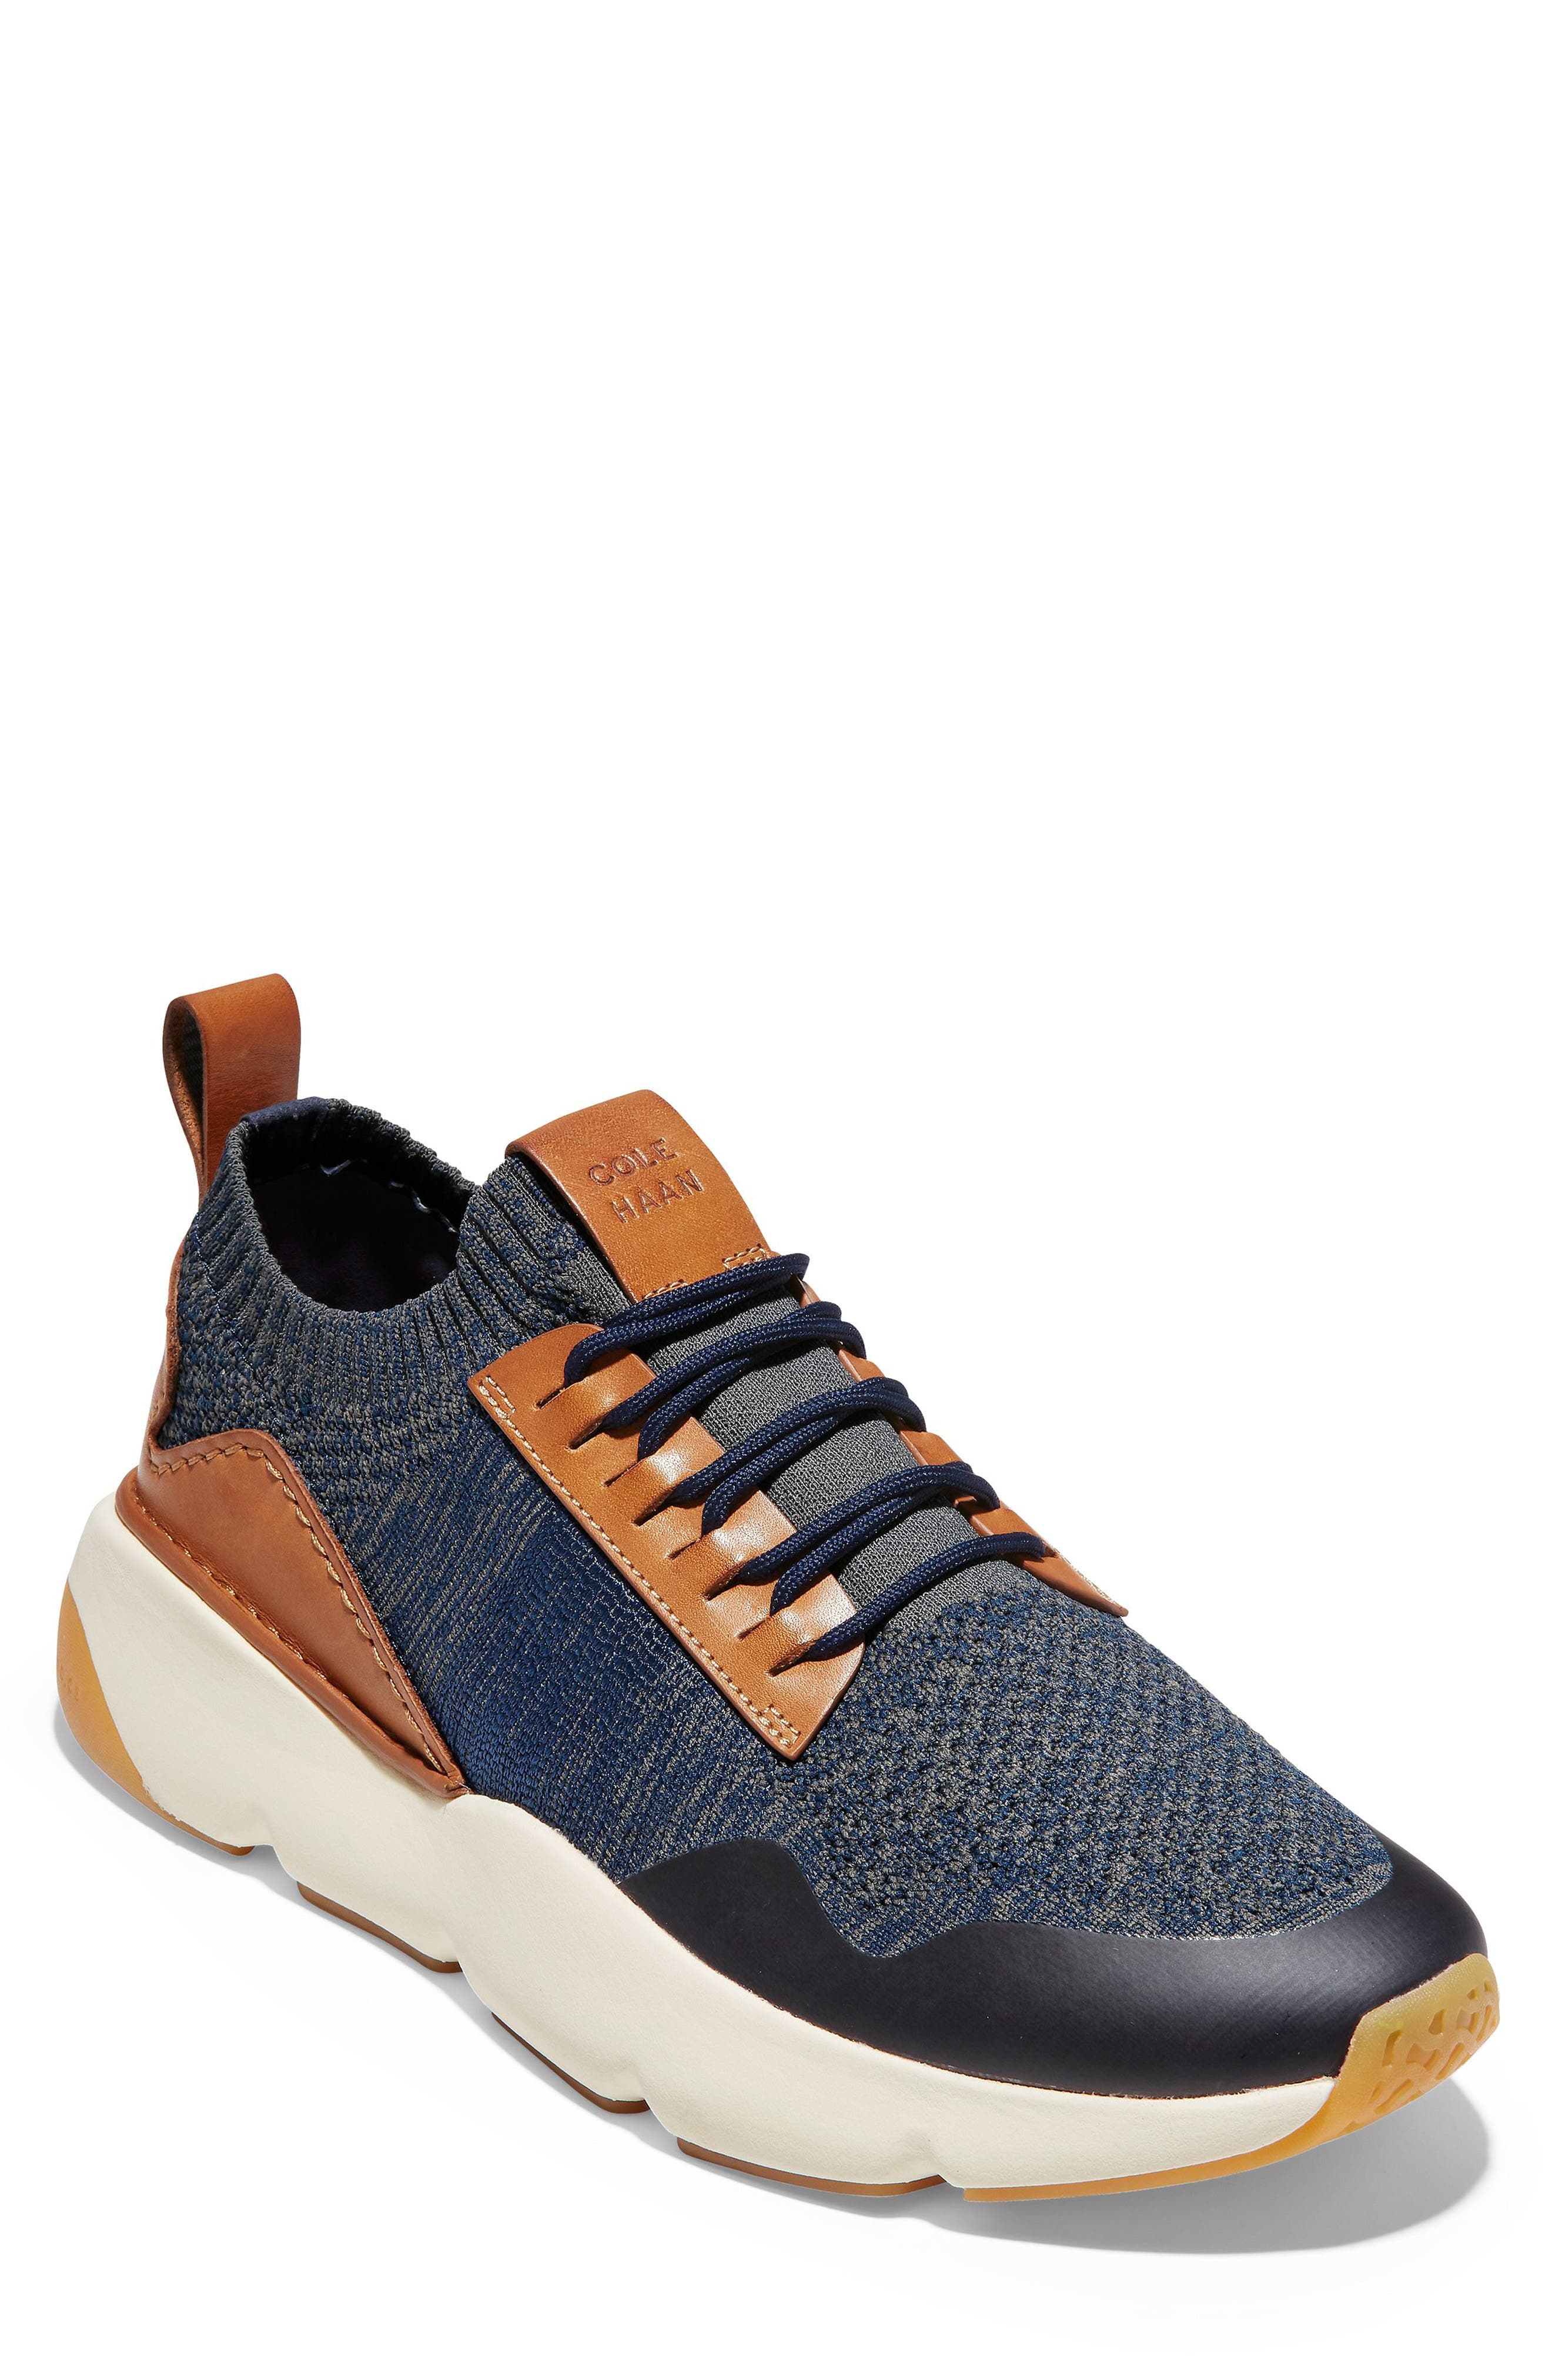 ZeroGrand All-Day Trainer Sneaker,                             Main thumbnail 1, color,                             MARINE BLUE/ TAN KNIT